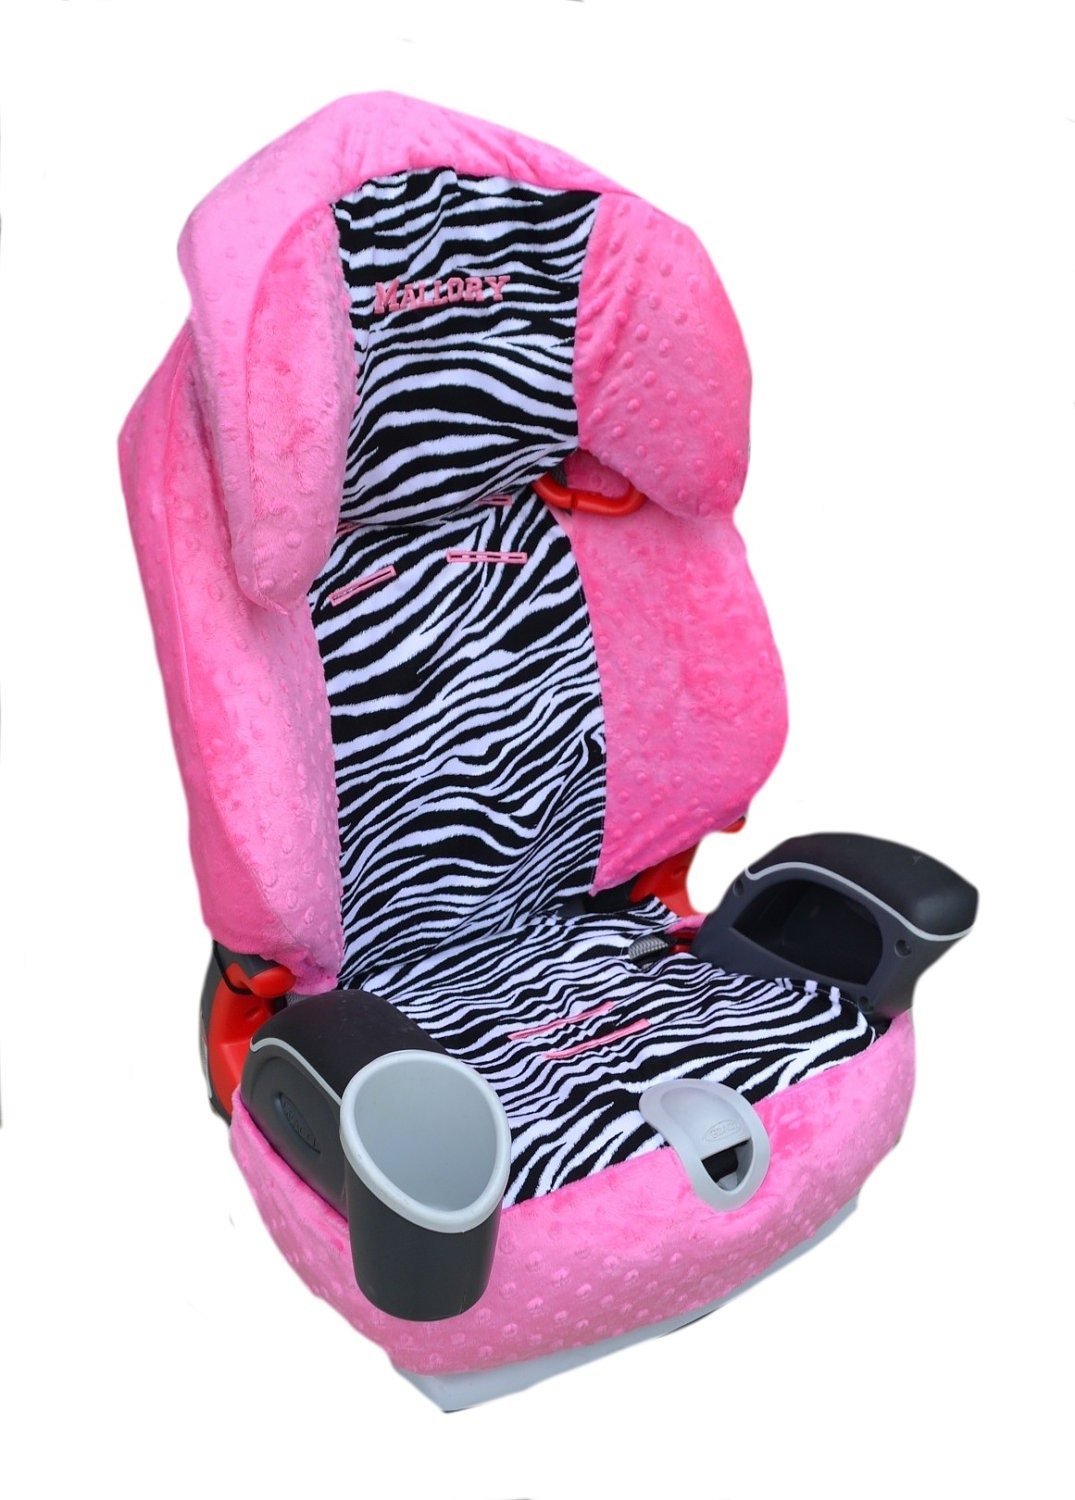 Where Can I Buy Graco Car Seat Replacement Covers